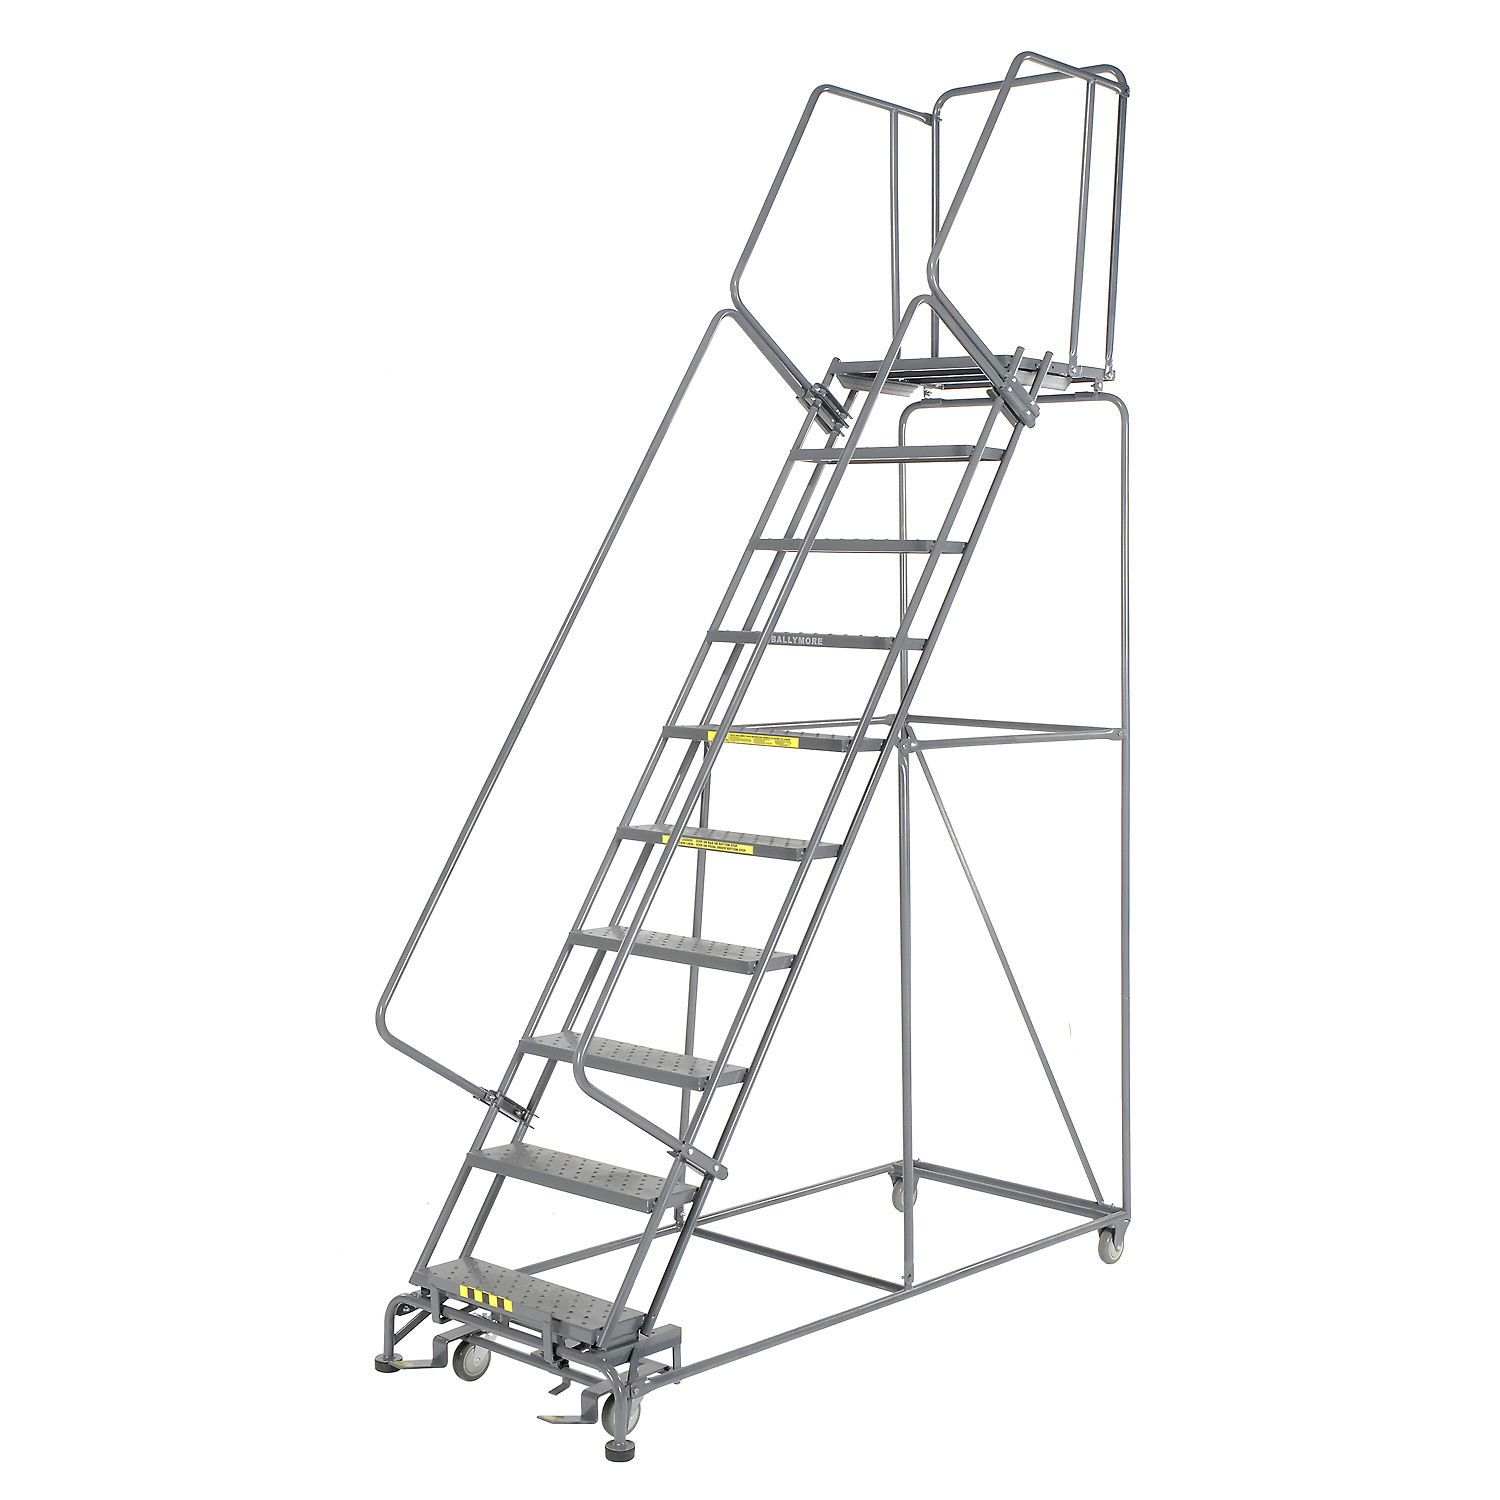 405739 2000x2000 Jpg 2000 2000 Rolling Ladder Ladder Step Ladders